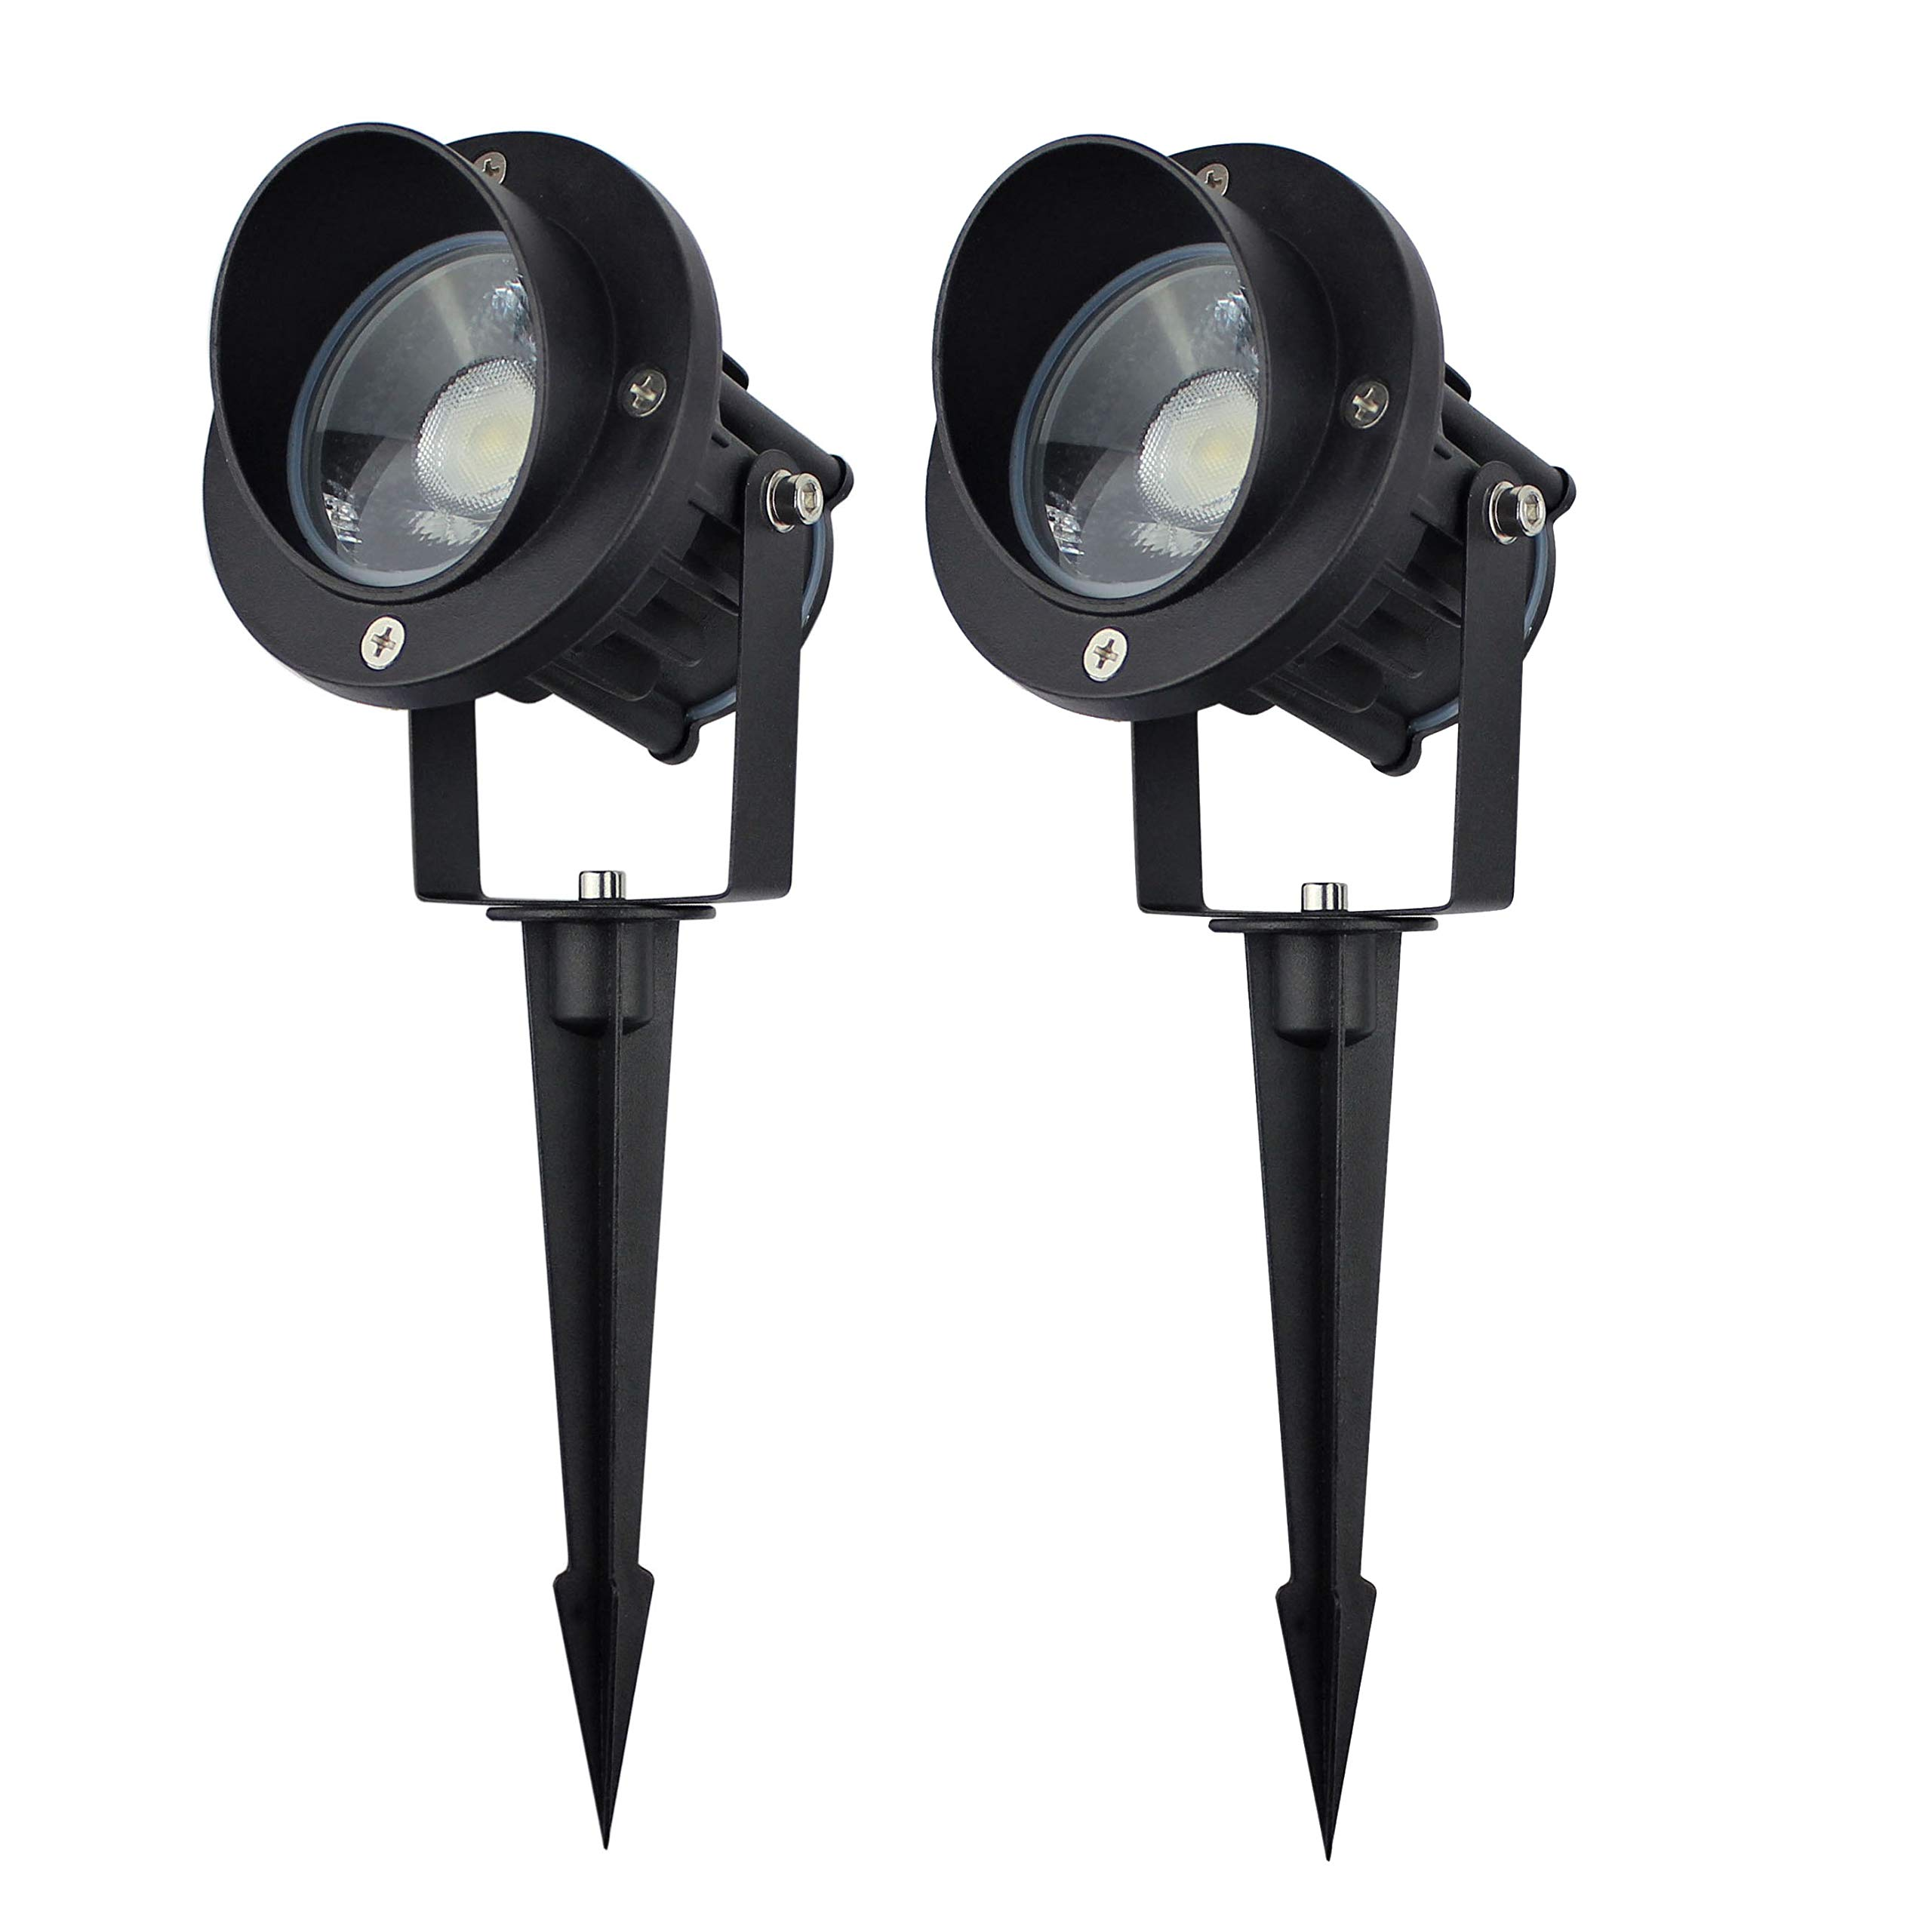 J.LUMI GBS9809 LED Outdoor Spotlight with Stake, 9W 120VAC, 5000K Daylight White, Metal Stake, Flag Light, Landscape Spotlight, UL-Listed Cord with Plug, Not Dimmable (Pack of 2) by J.LUMI